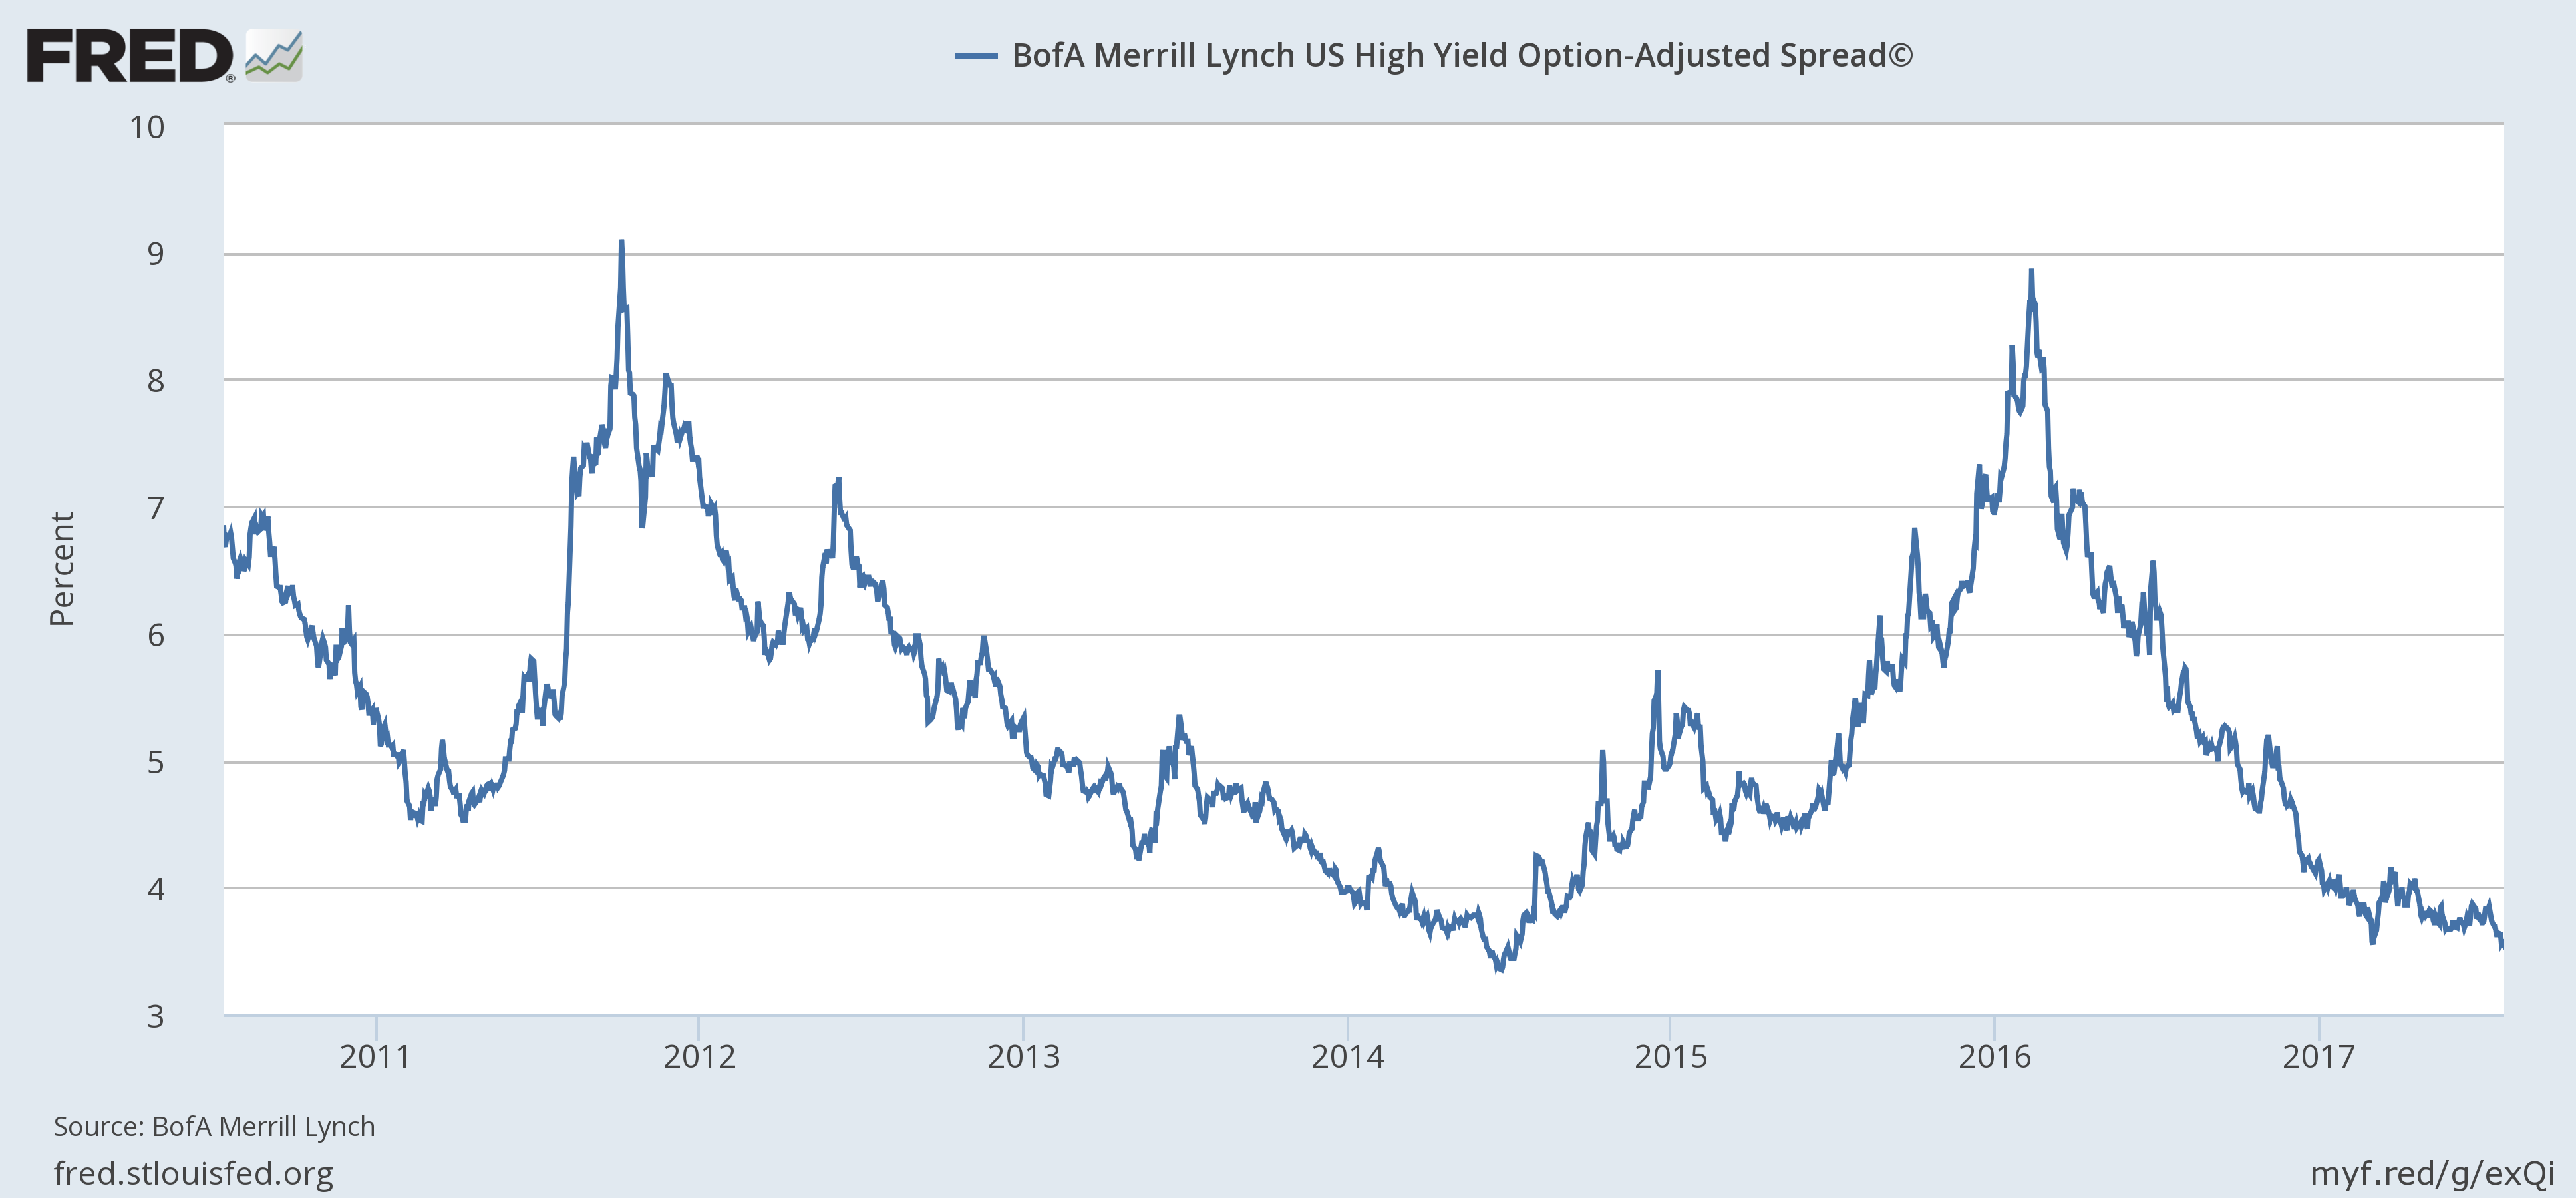 BofA Merril Lynch US High Yield Option-Adjusted Spread, Jul 2010 - Jan 2017